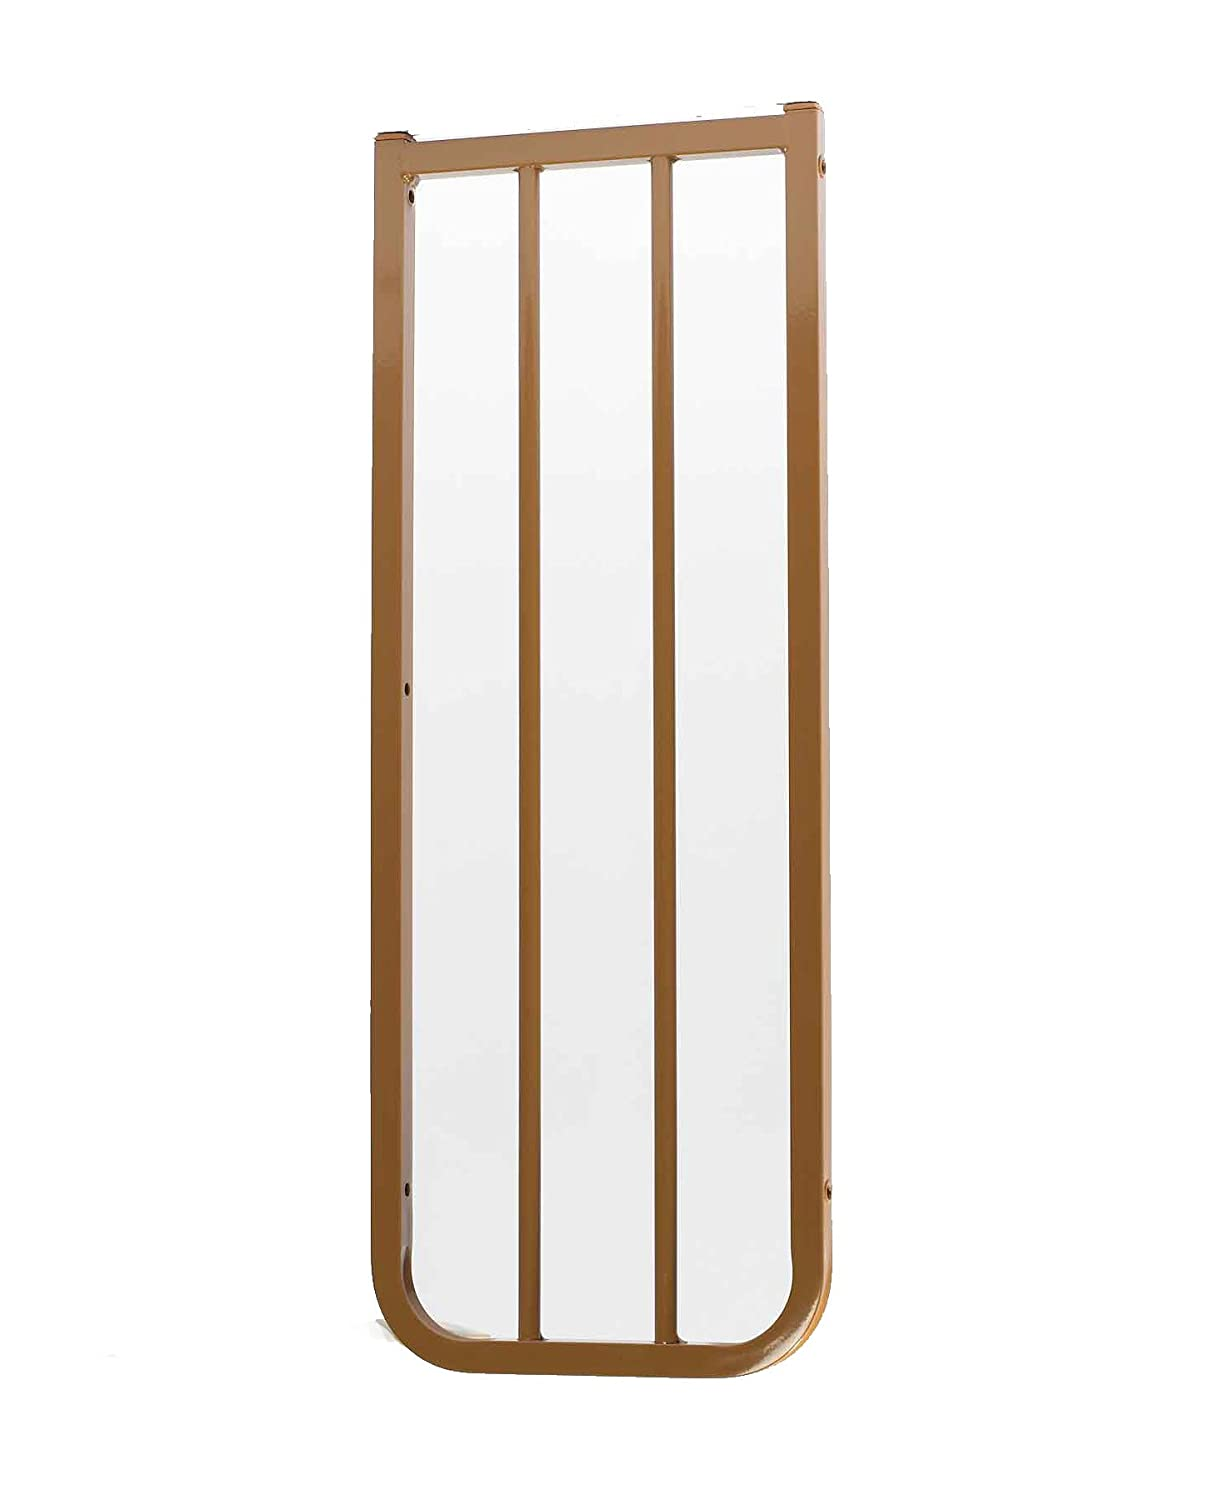 Cardinal Gates Extension for Outdoor Child Safety Gate, Brown, 10.5